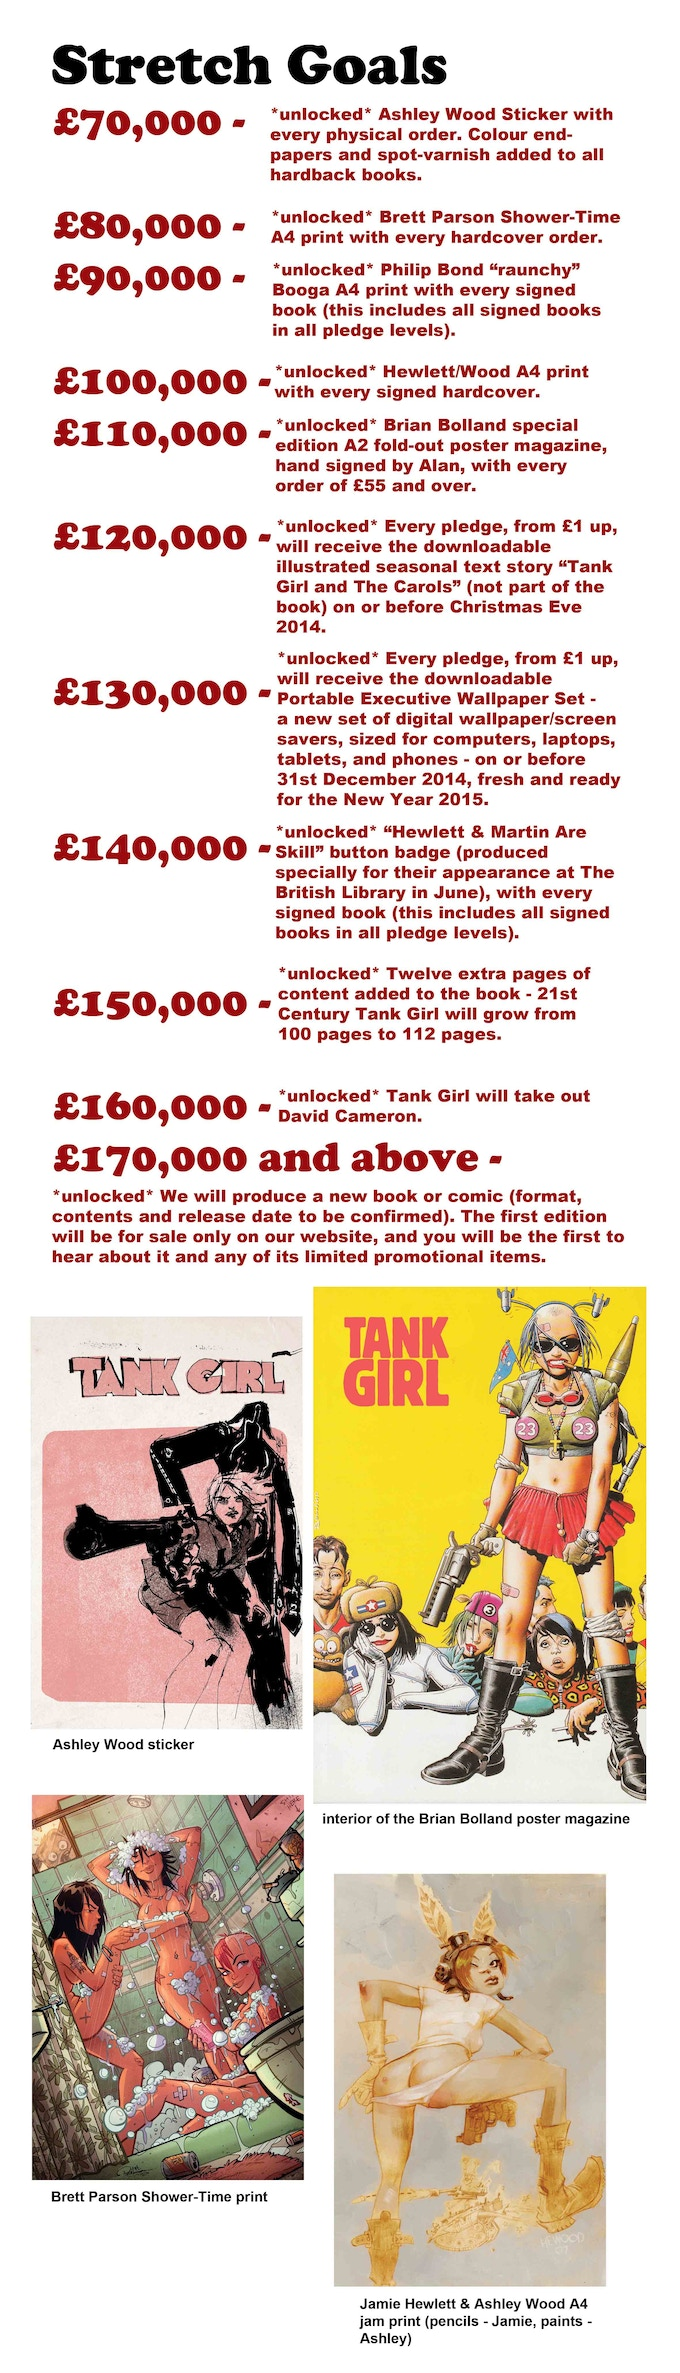 If We Make More Than That, We Will Look Into Putting Funds Towards The  Production Of The Nextnext Tank Girl Book!